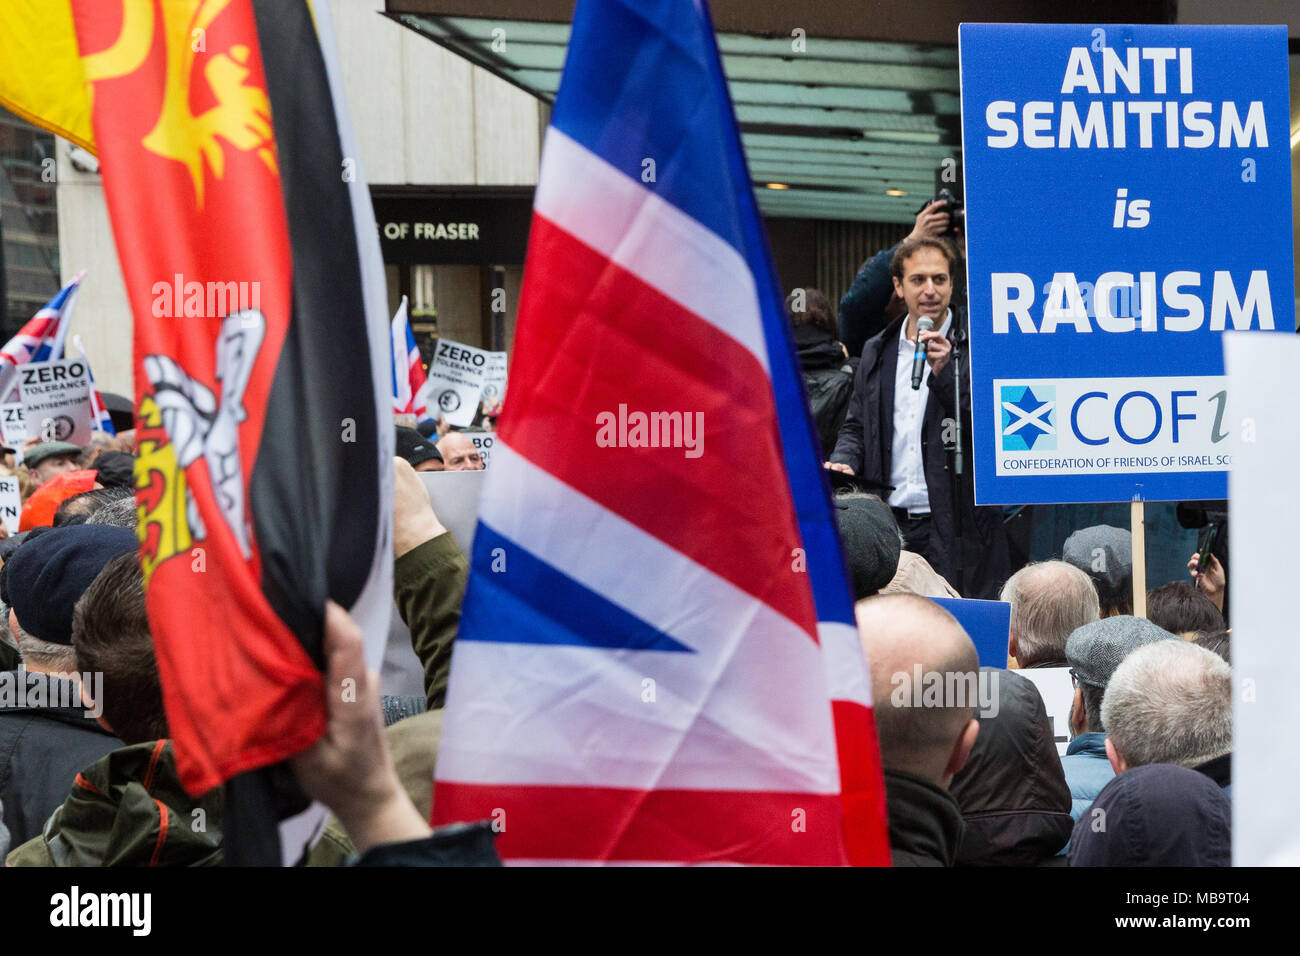 London, UK. 8th April, 2018. Gideon Falter, Chairman of the Campaign Against Antisemitism, addresses Jews and non-Jews attending a demonstration organised by the campaign outside the head office of the Labour Party to apply pressure on its leadership to demonstrate a 'zero tolerance' approach to anti-Semitism. Credit: Mark Kerrison/Alamy Live News - Stock Image